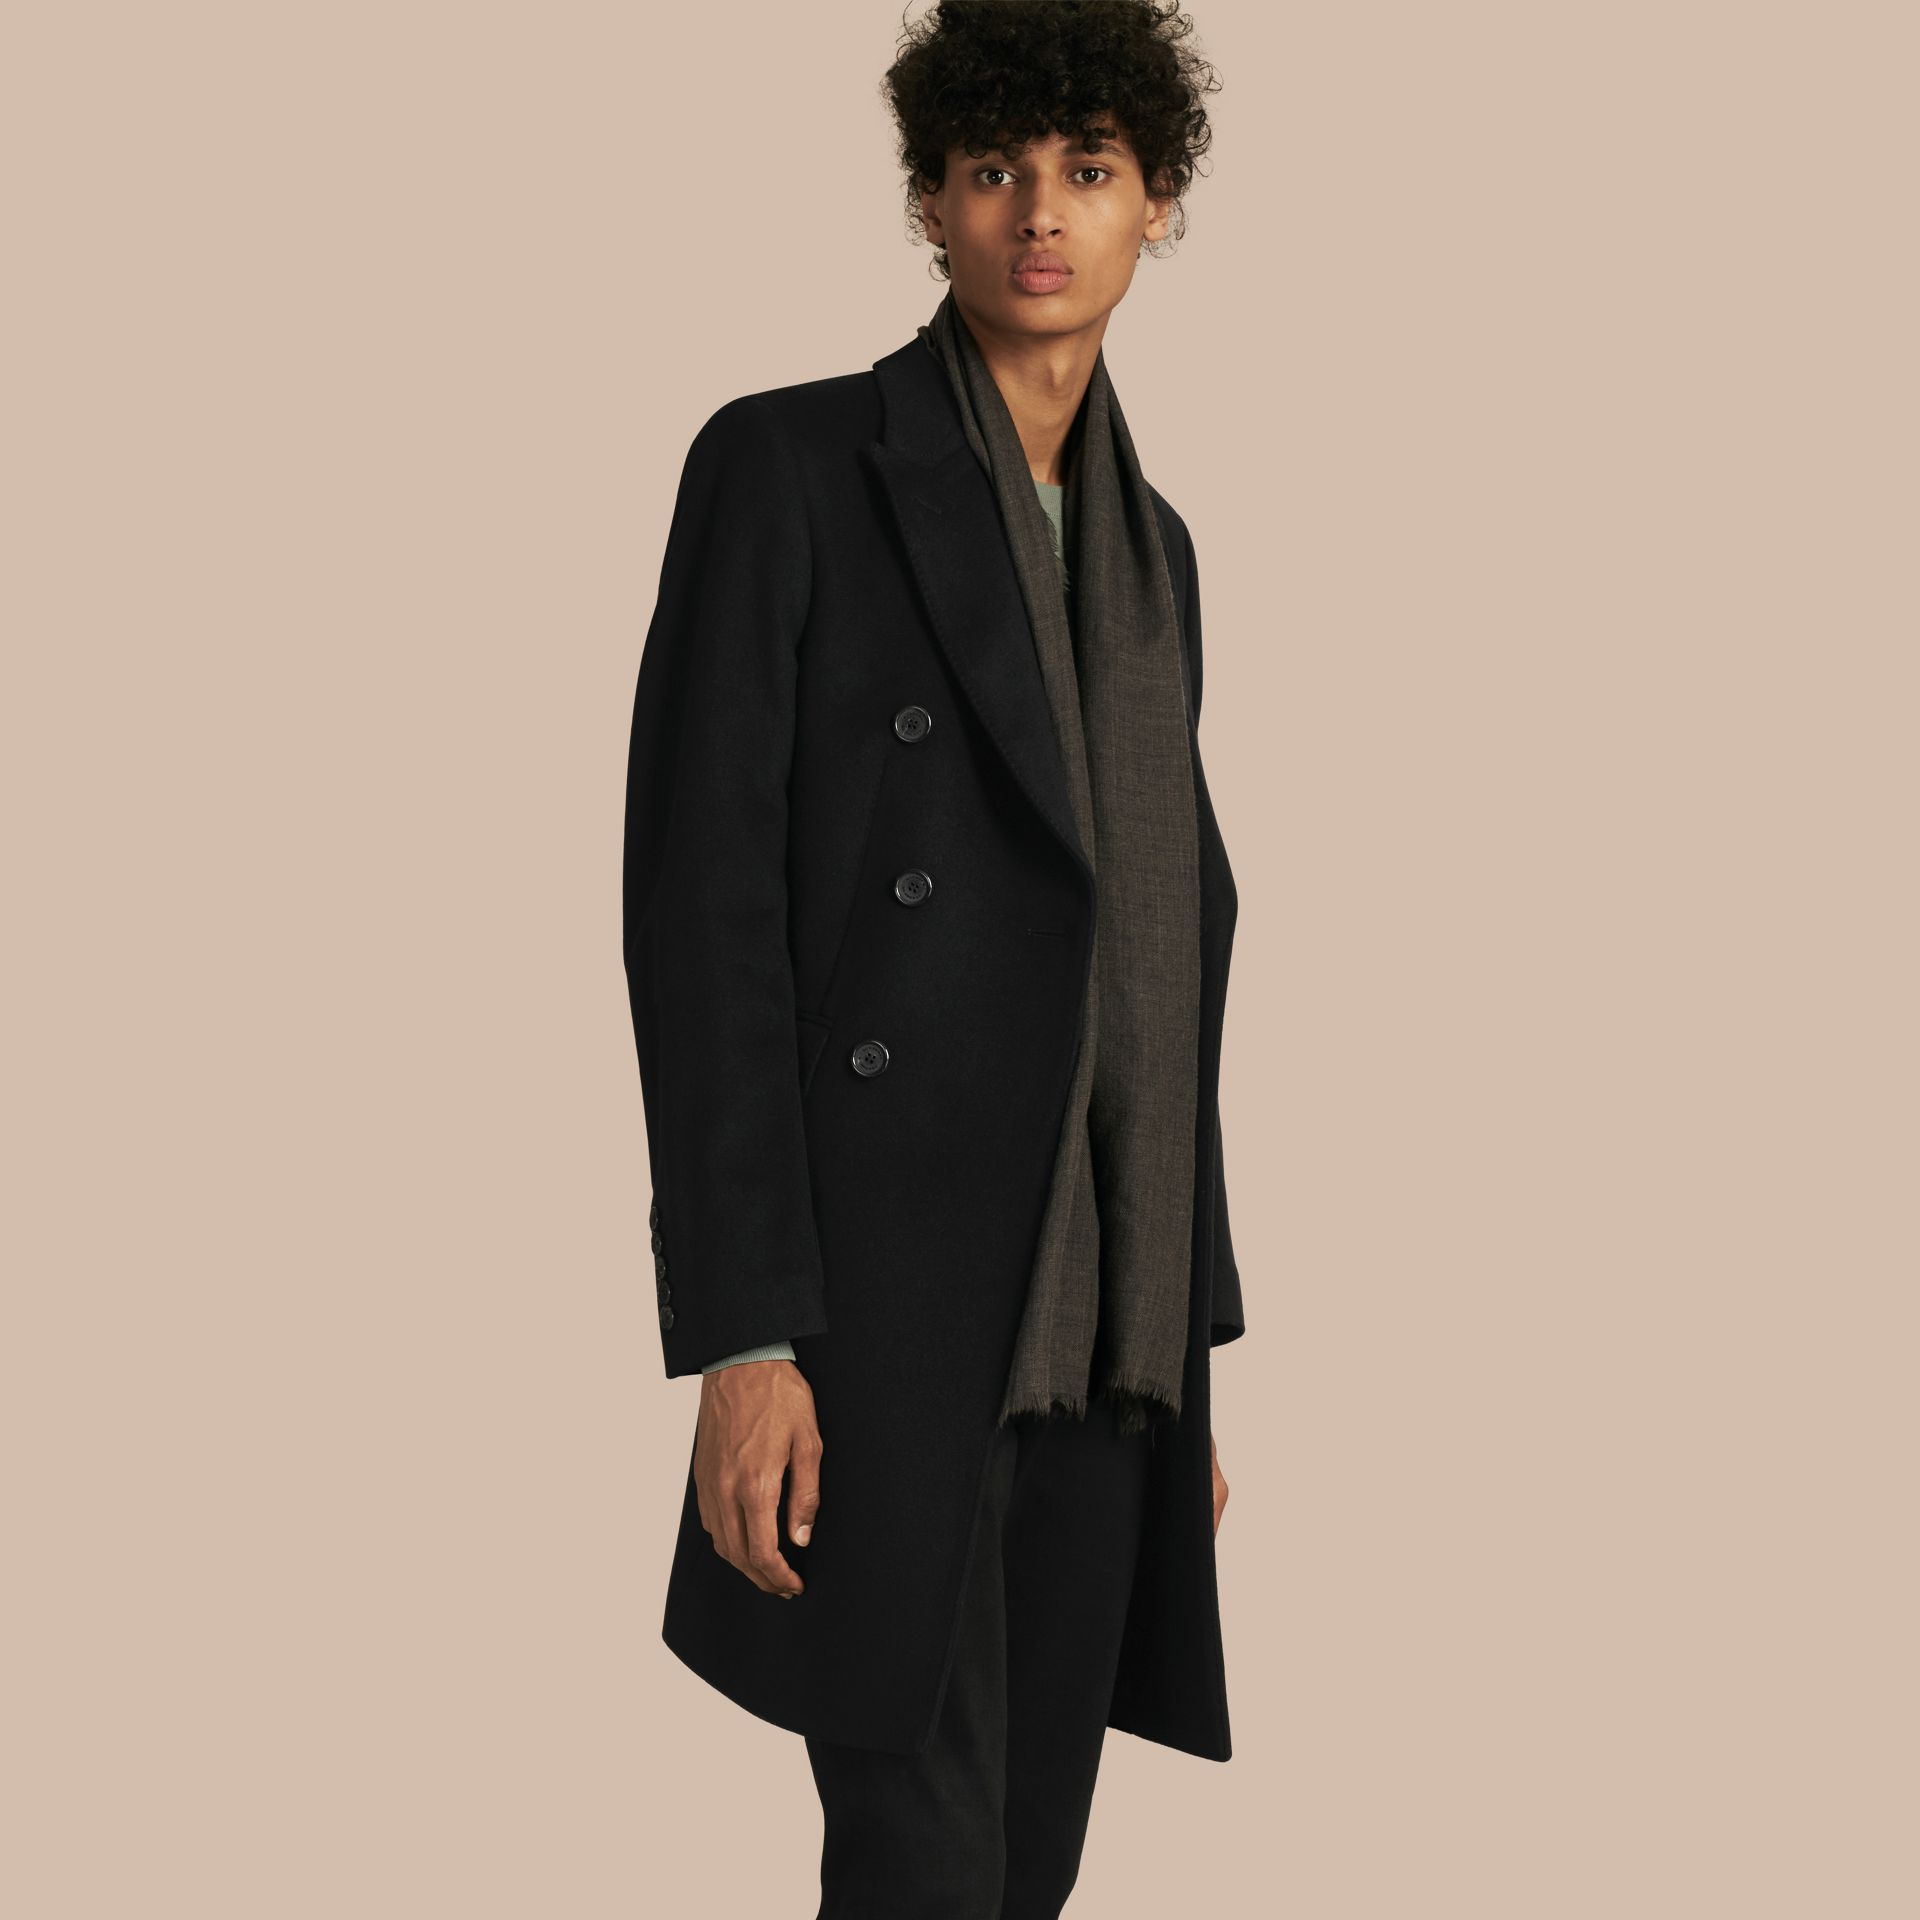 Black Double-breasted Wool Cashmere Tailored Coat - gallery image 1